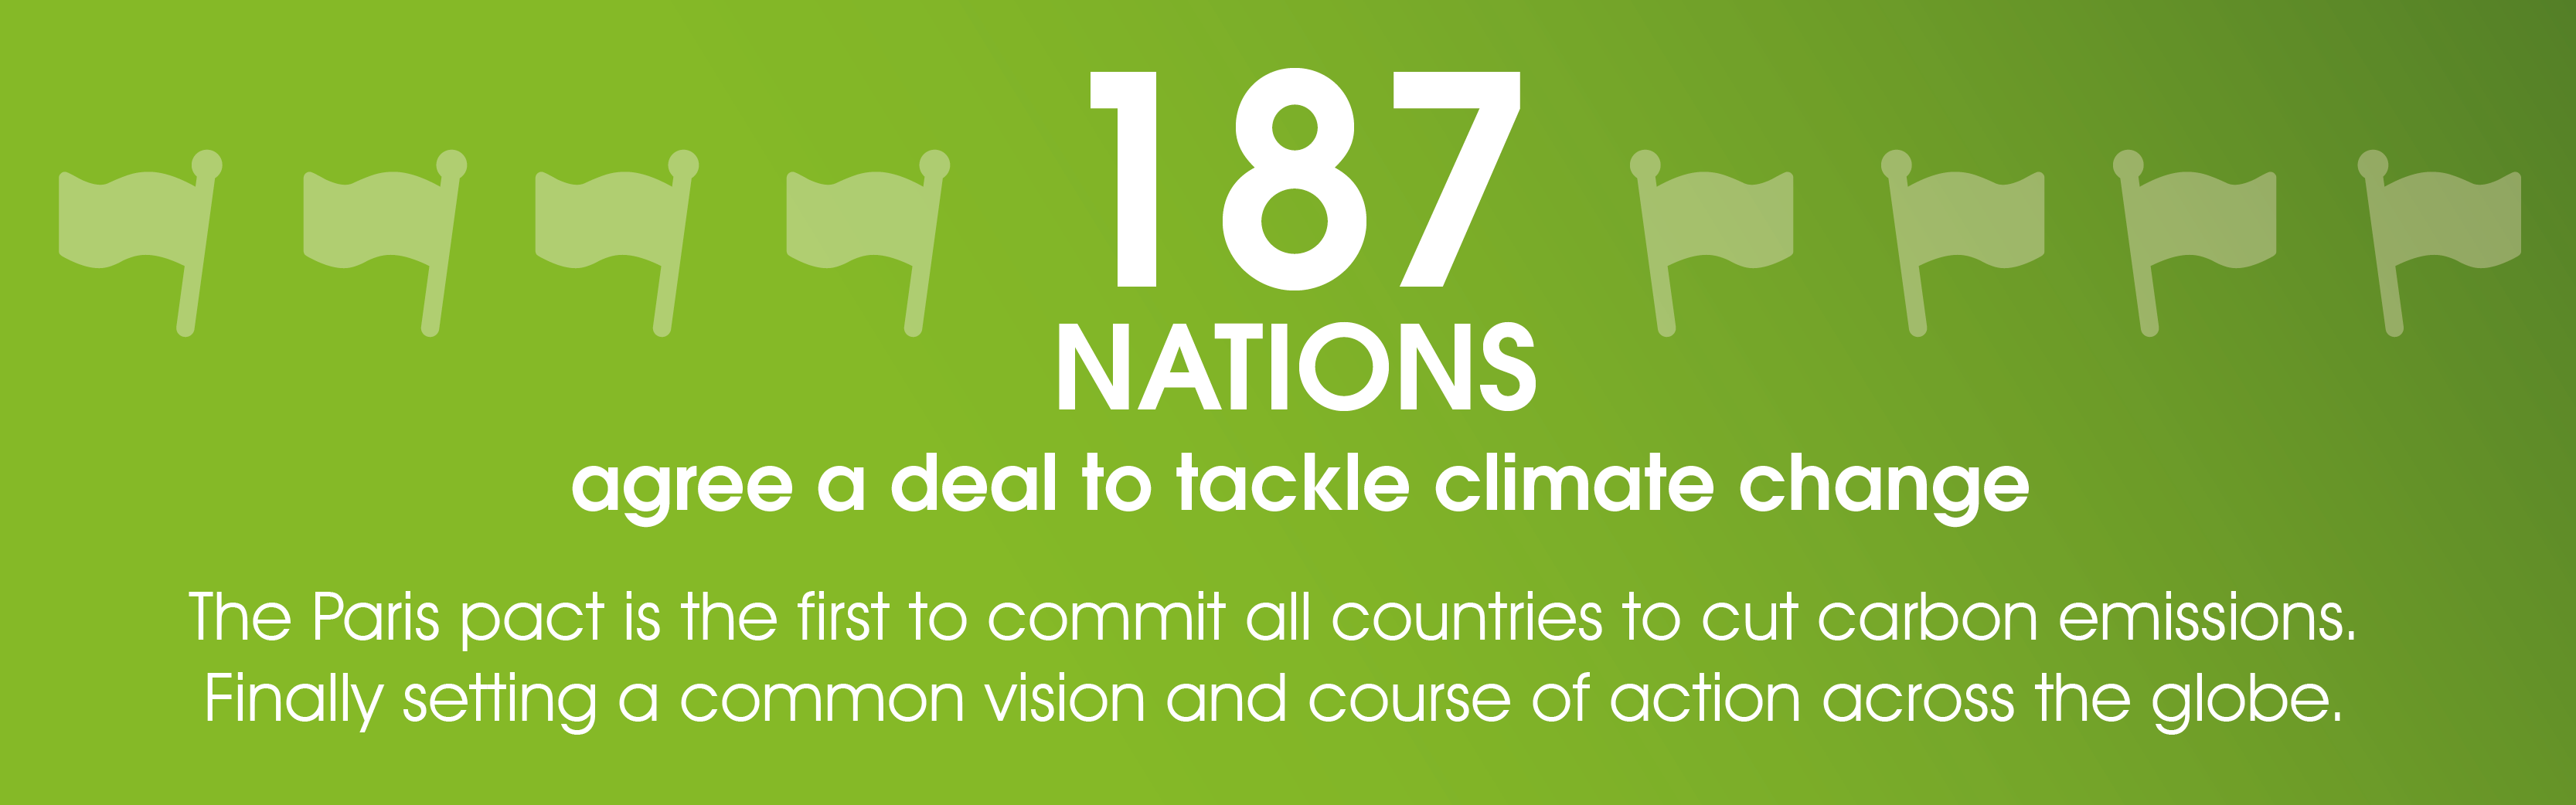 climate-change-infographics_2-05